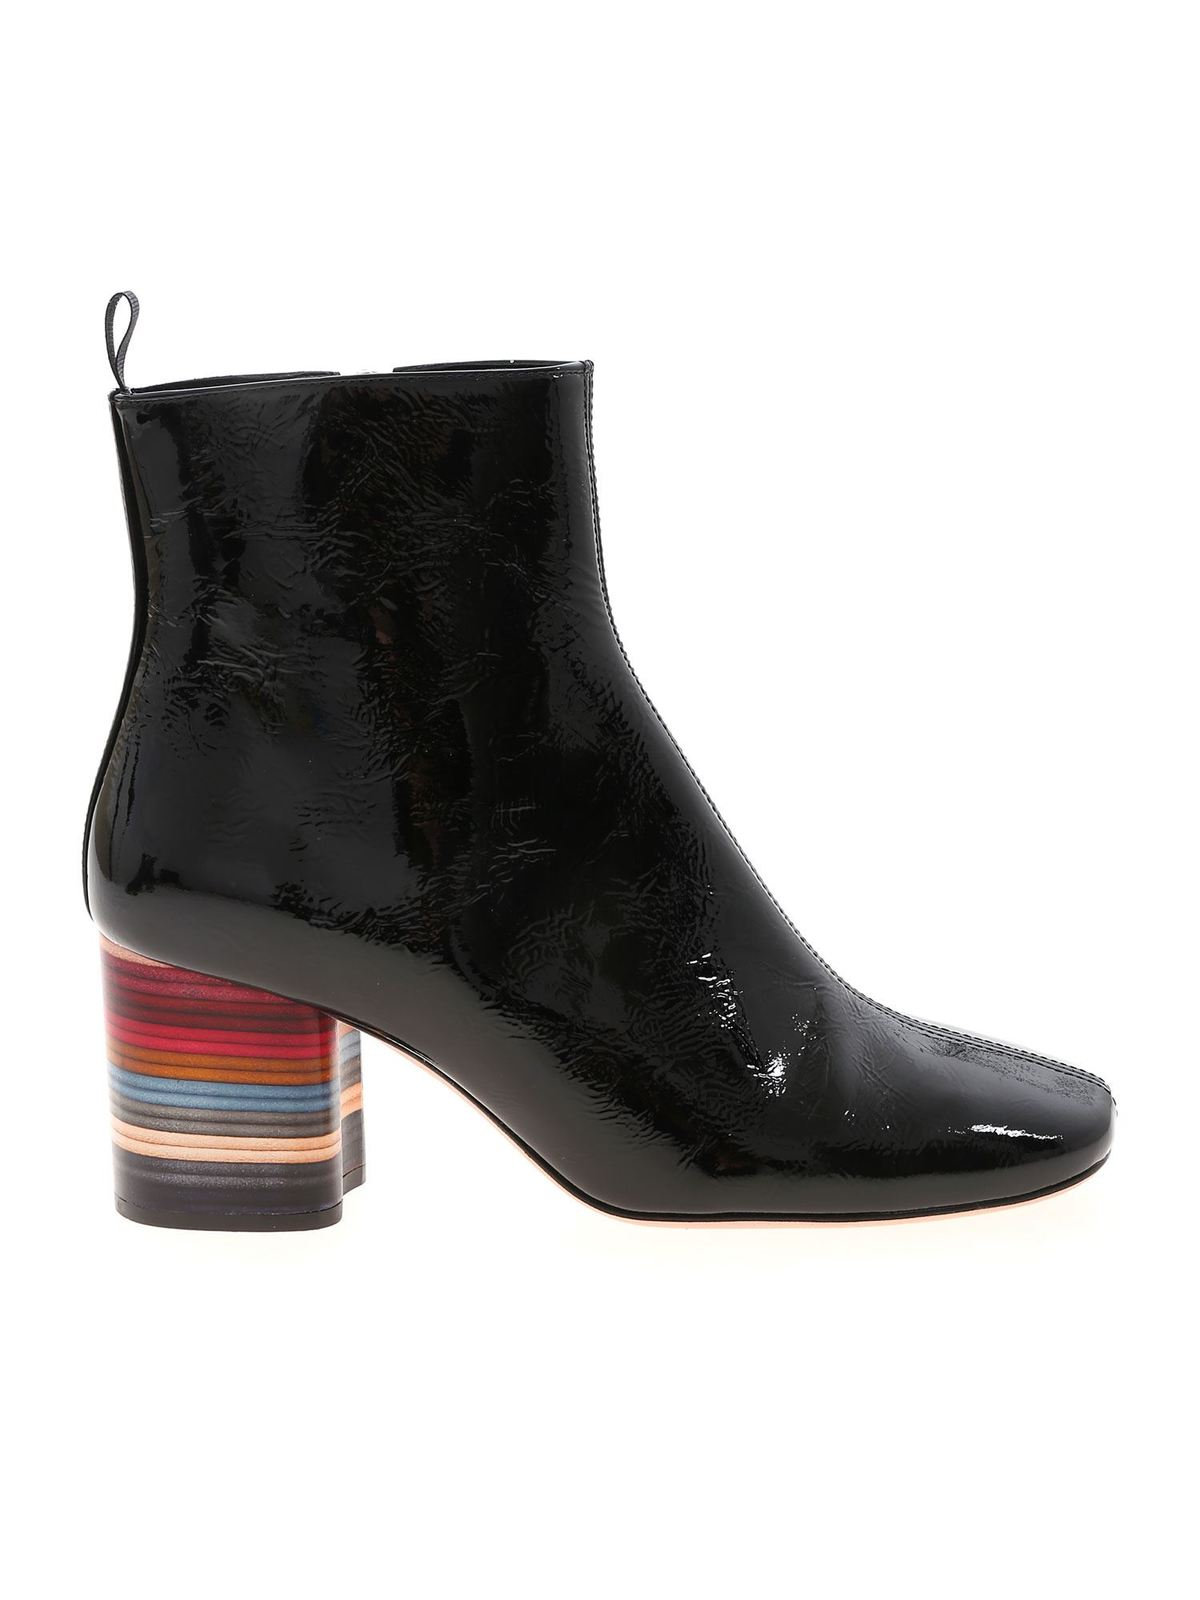 Paul Smith MOSS BLACK SWIRL HEEL ANKLE BOOTS IN BLACK